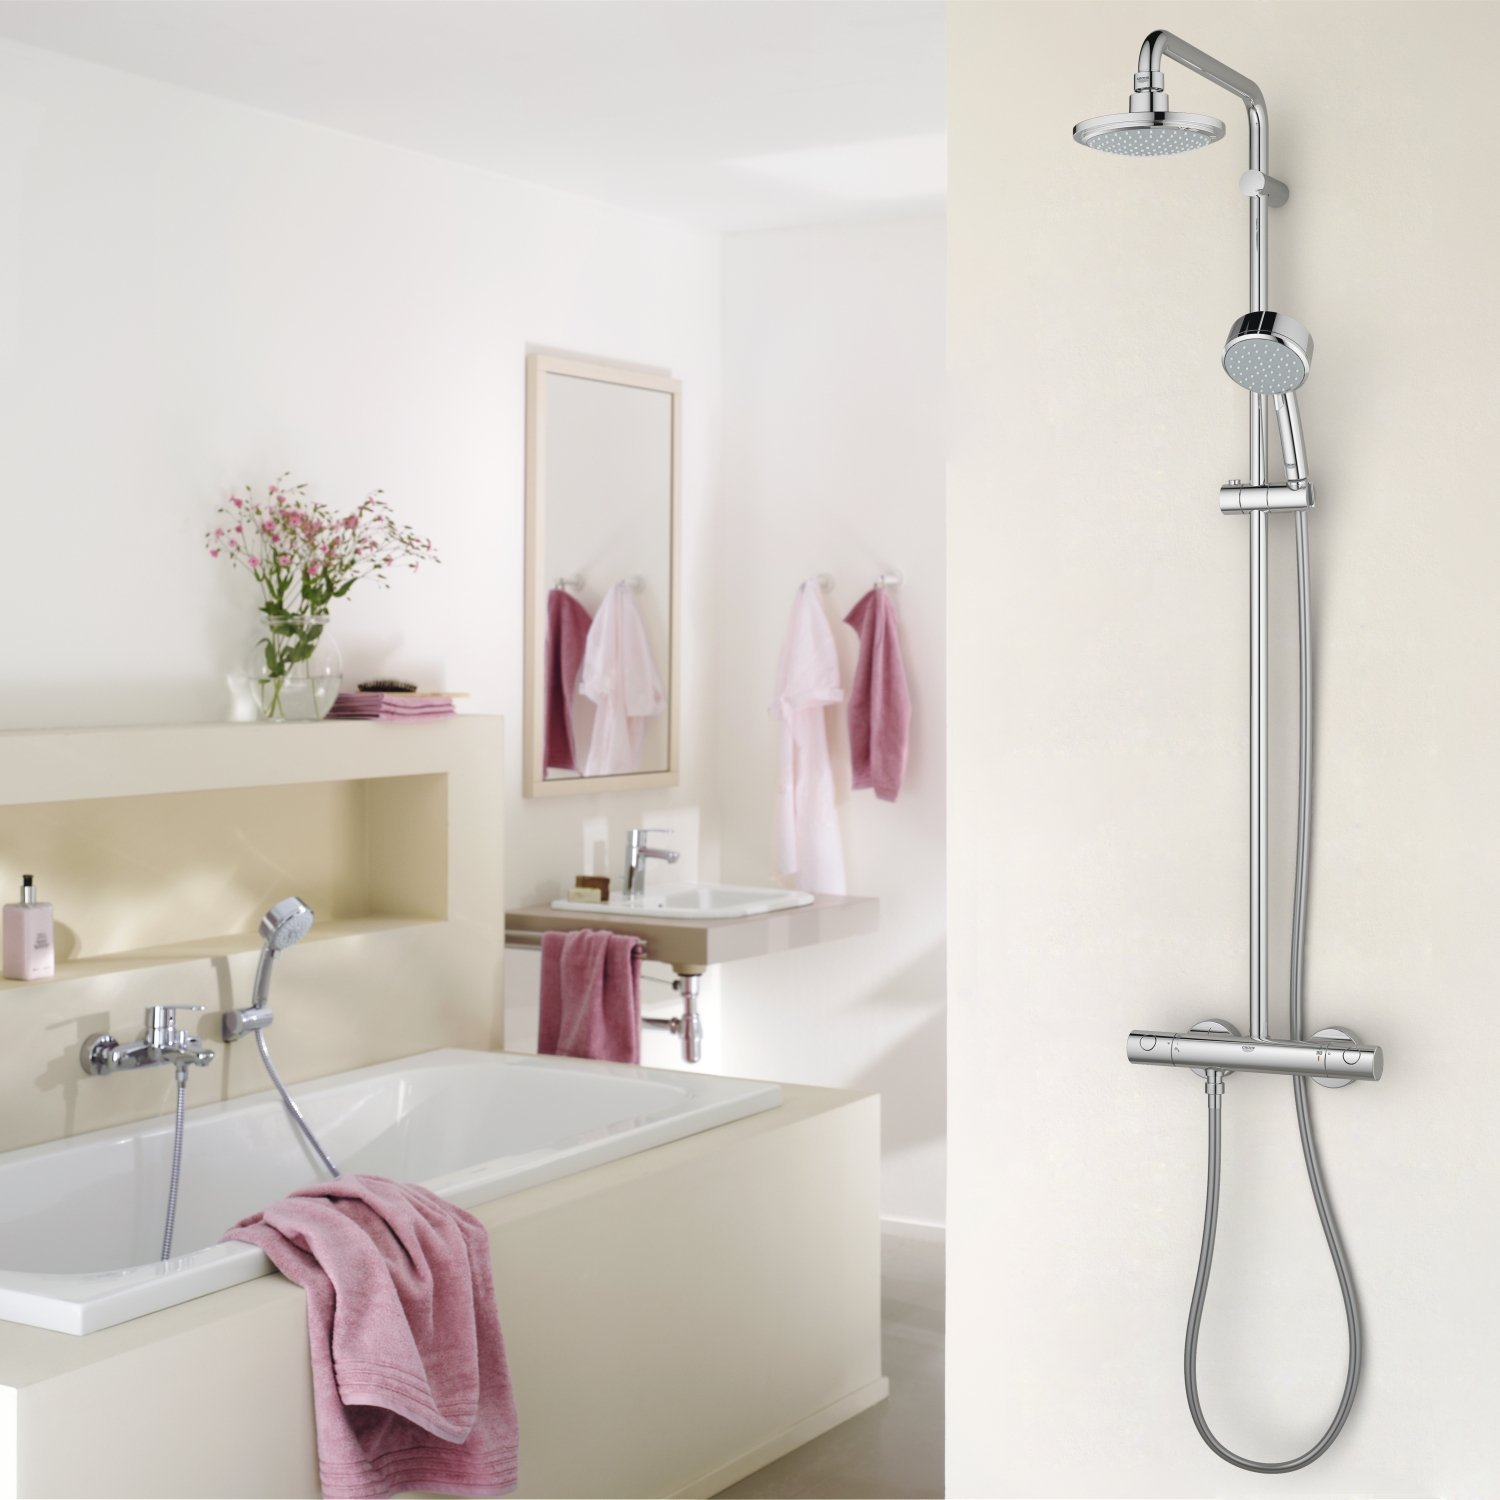 Grohe Euphoria Douchesysteem 180 Chroom Grohe Euphoria System 180 Douchesysteem Met Thermostaat